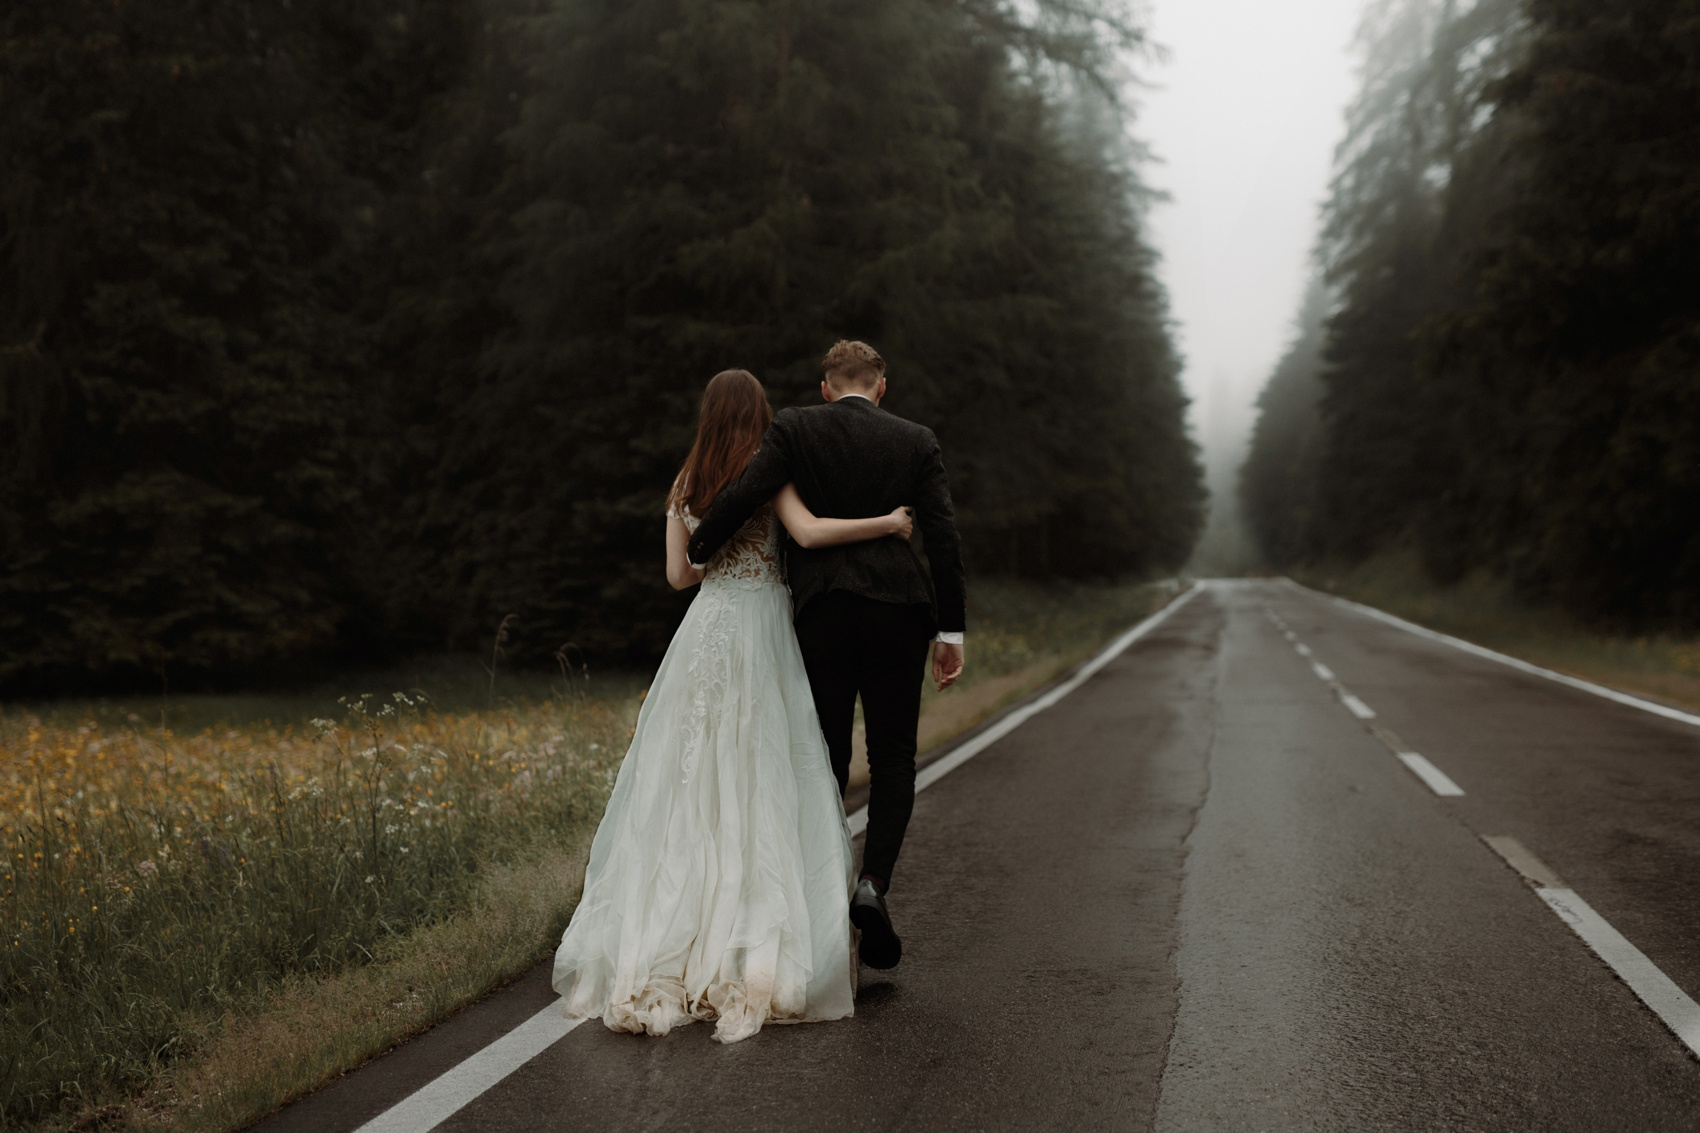 couple walking on an empty road